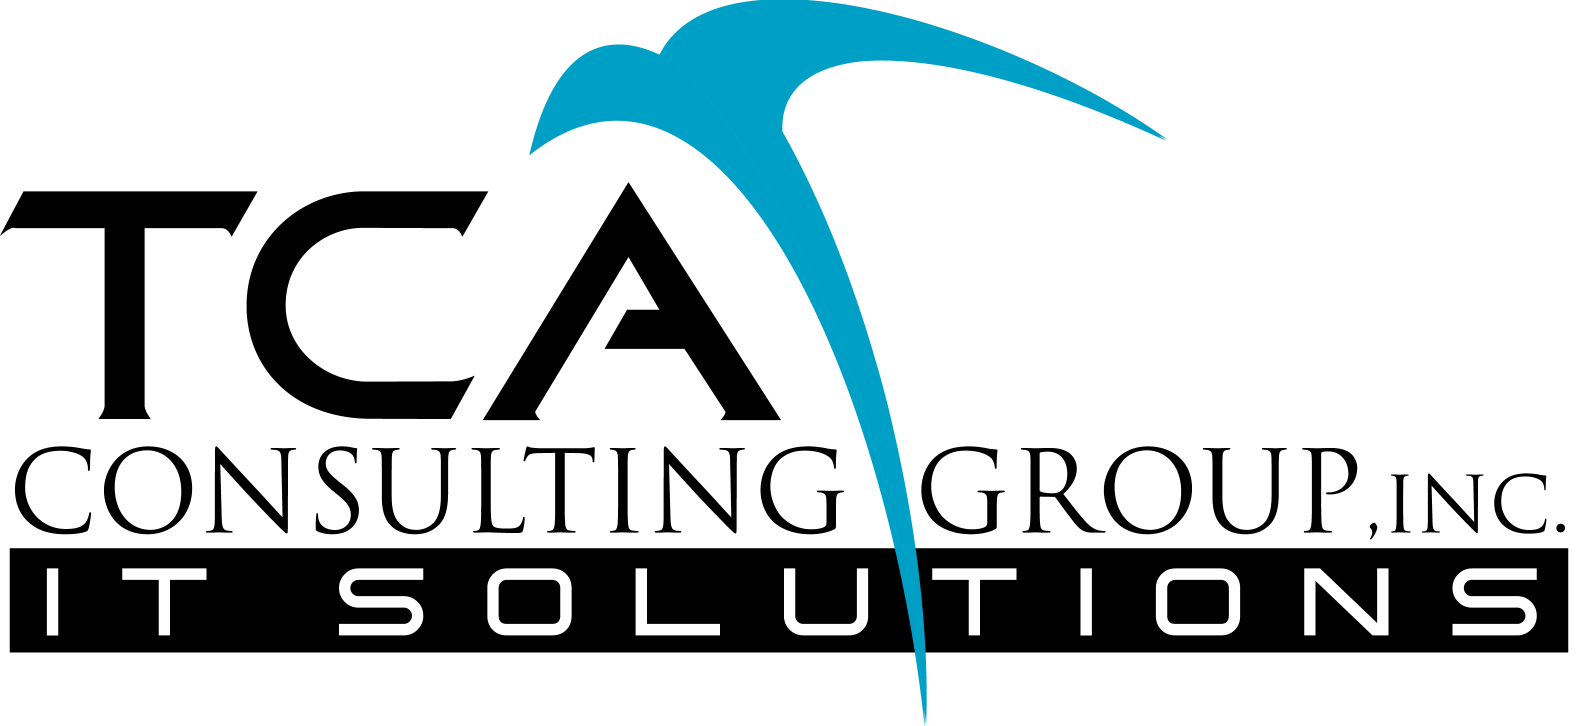 TCA Consulting Group Inc